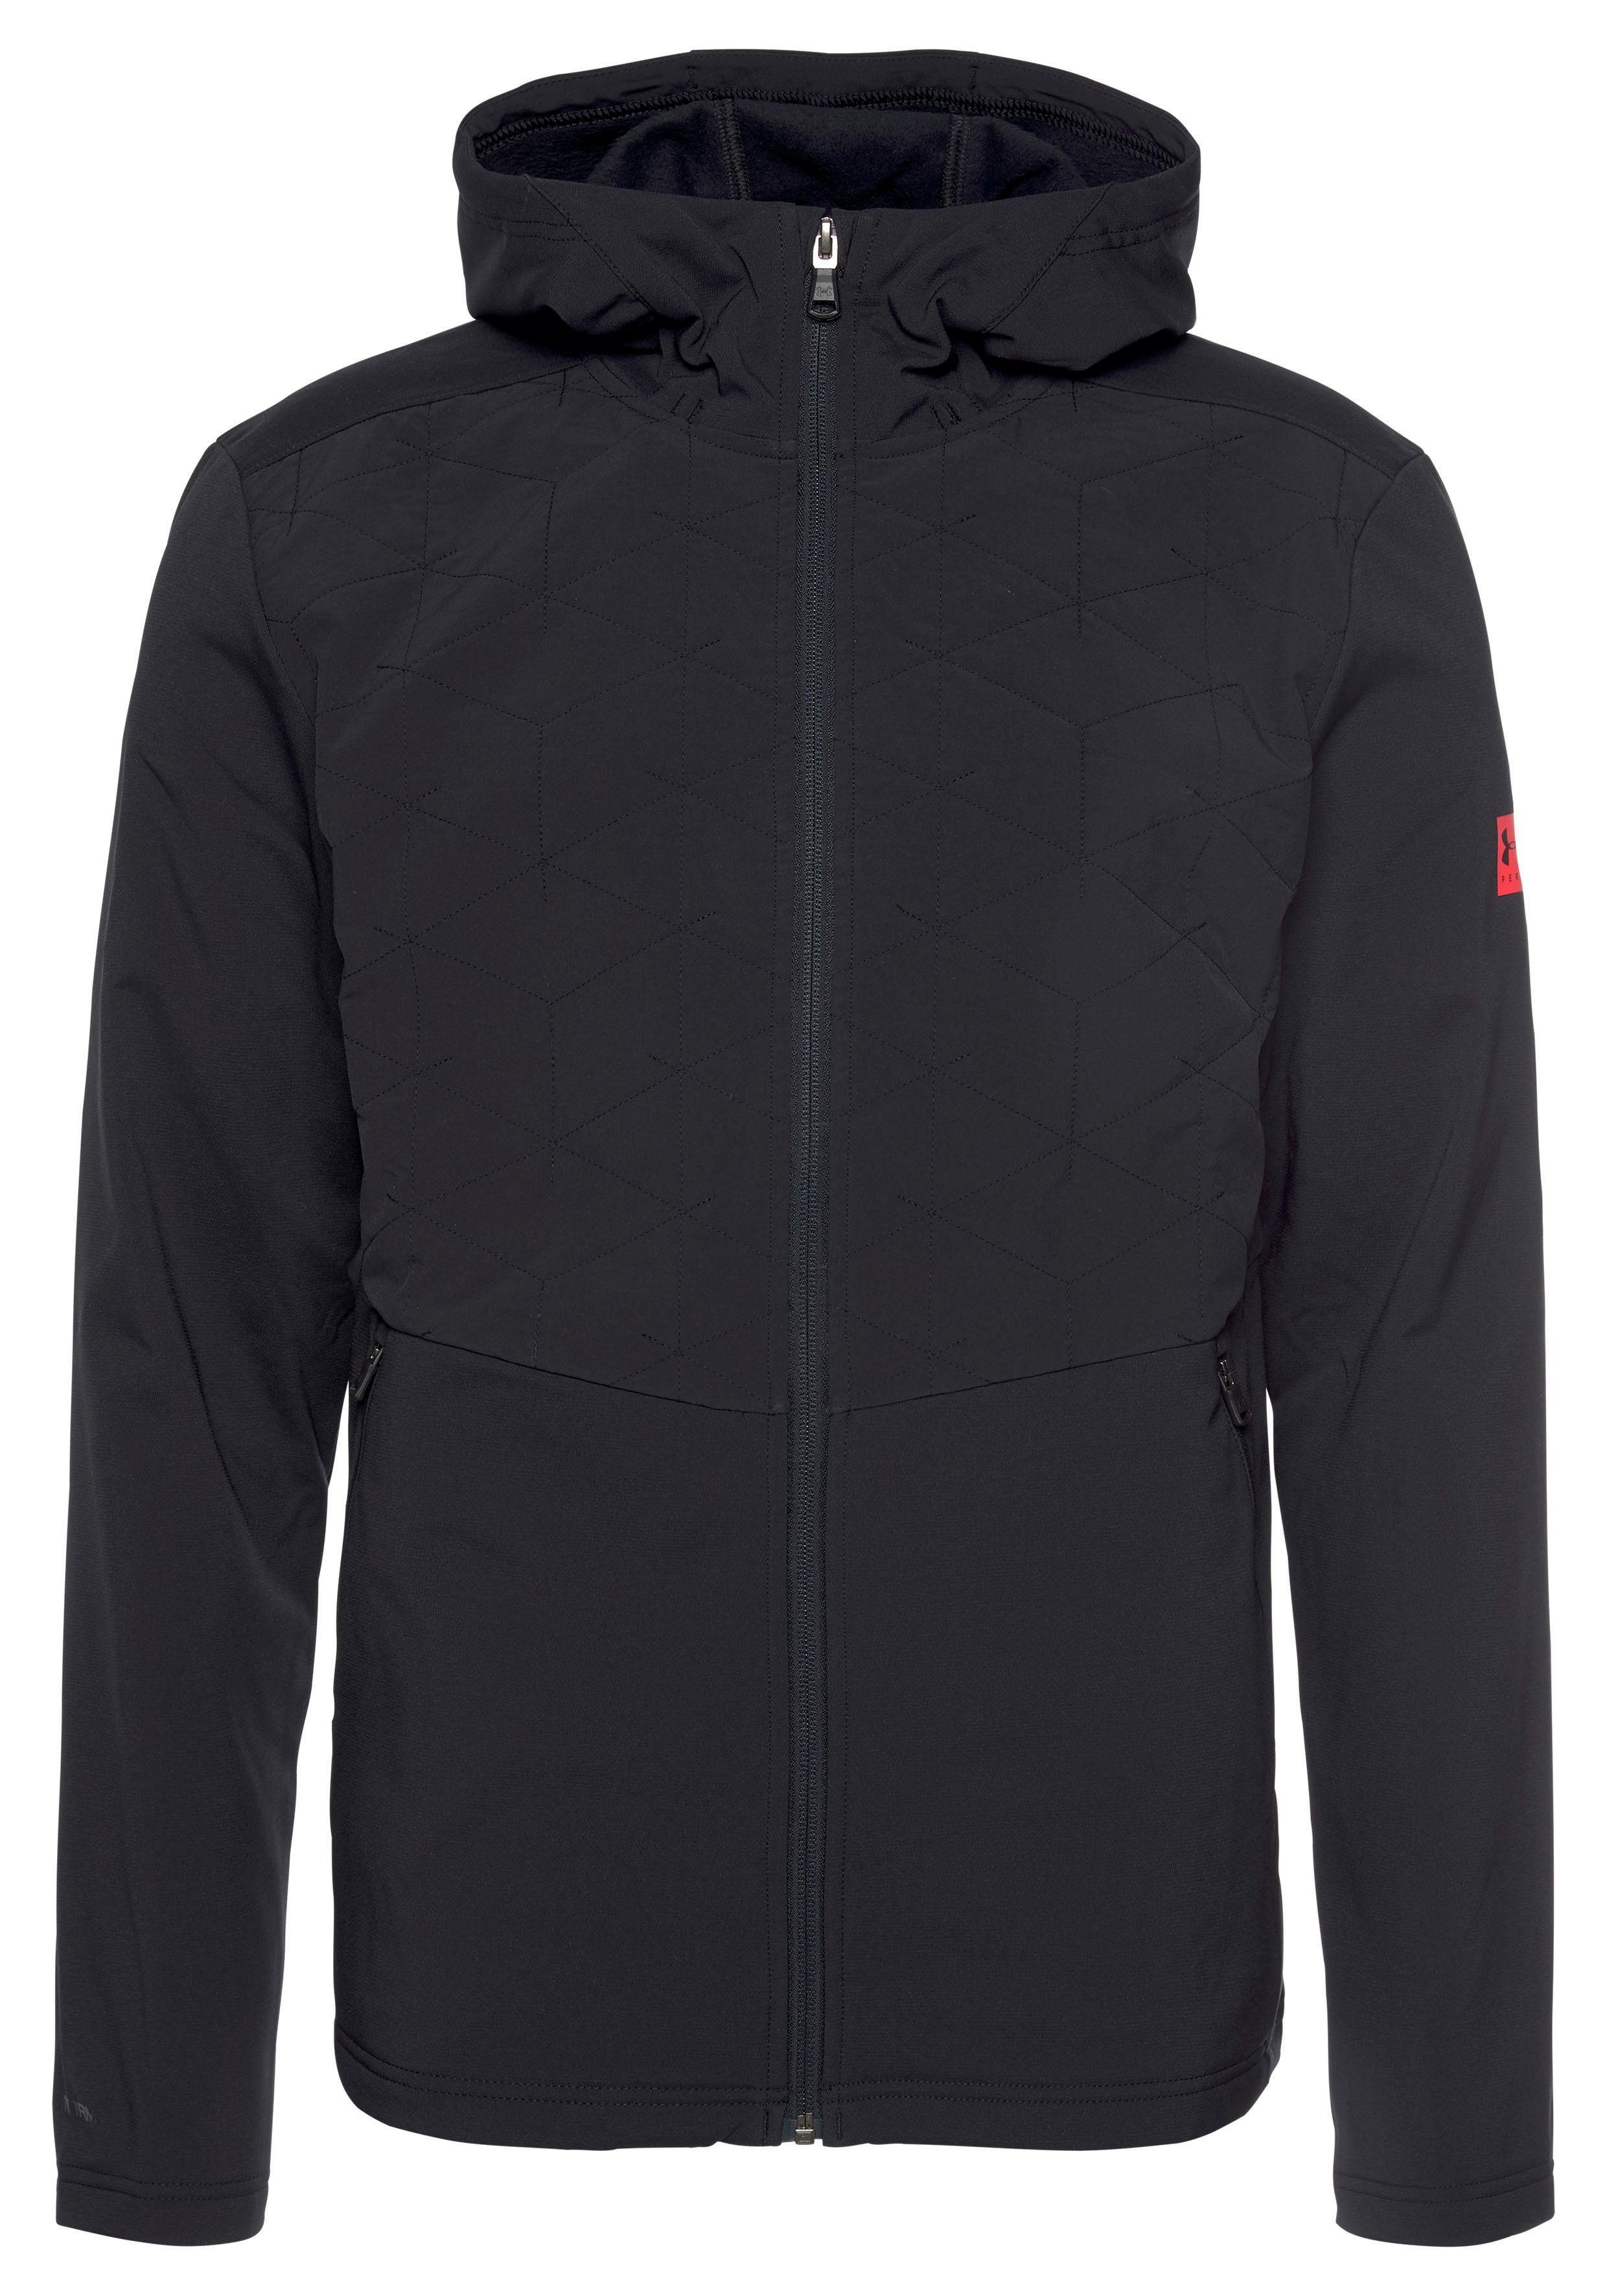 Under Armour Trainingsjacke | Sportbekleidung | Under Armour